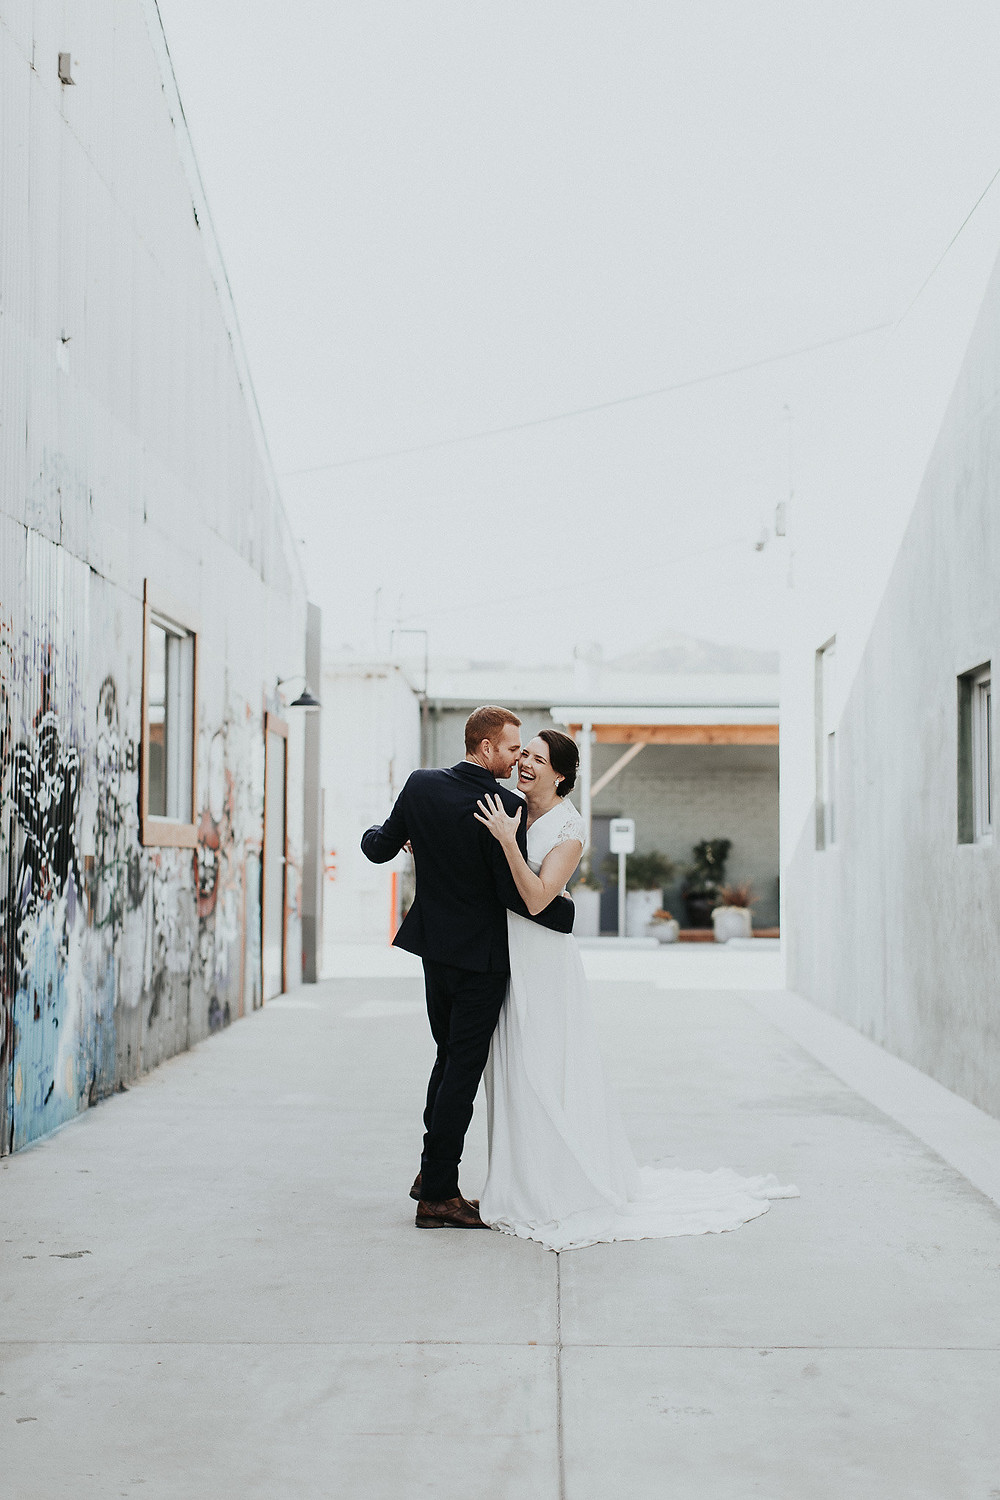 Bride and Groom laugh and twirl through the graffiti alleyways